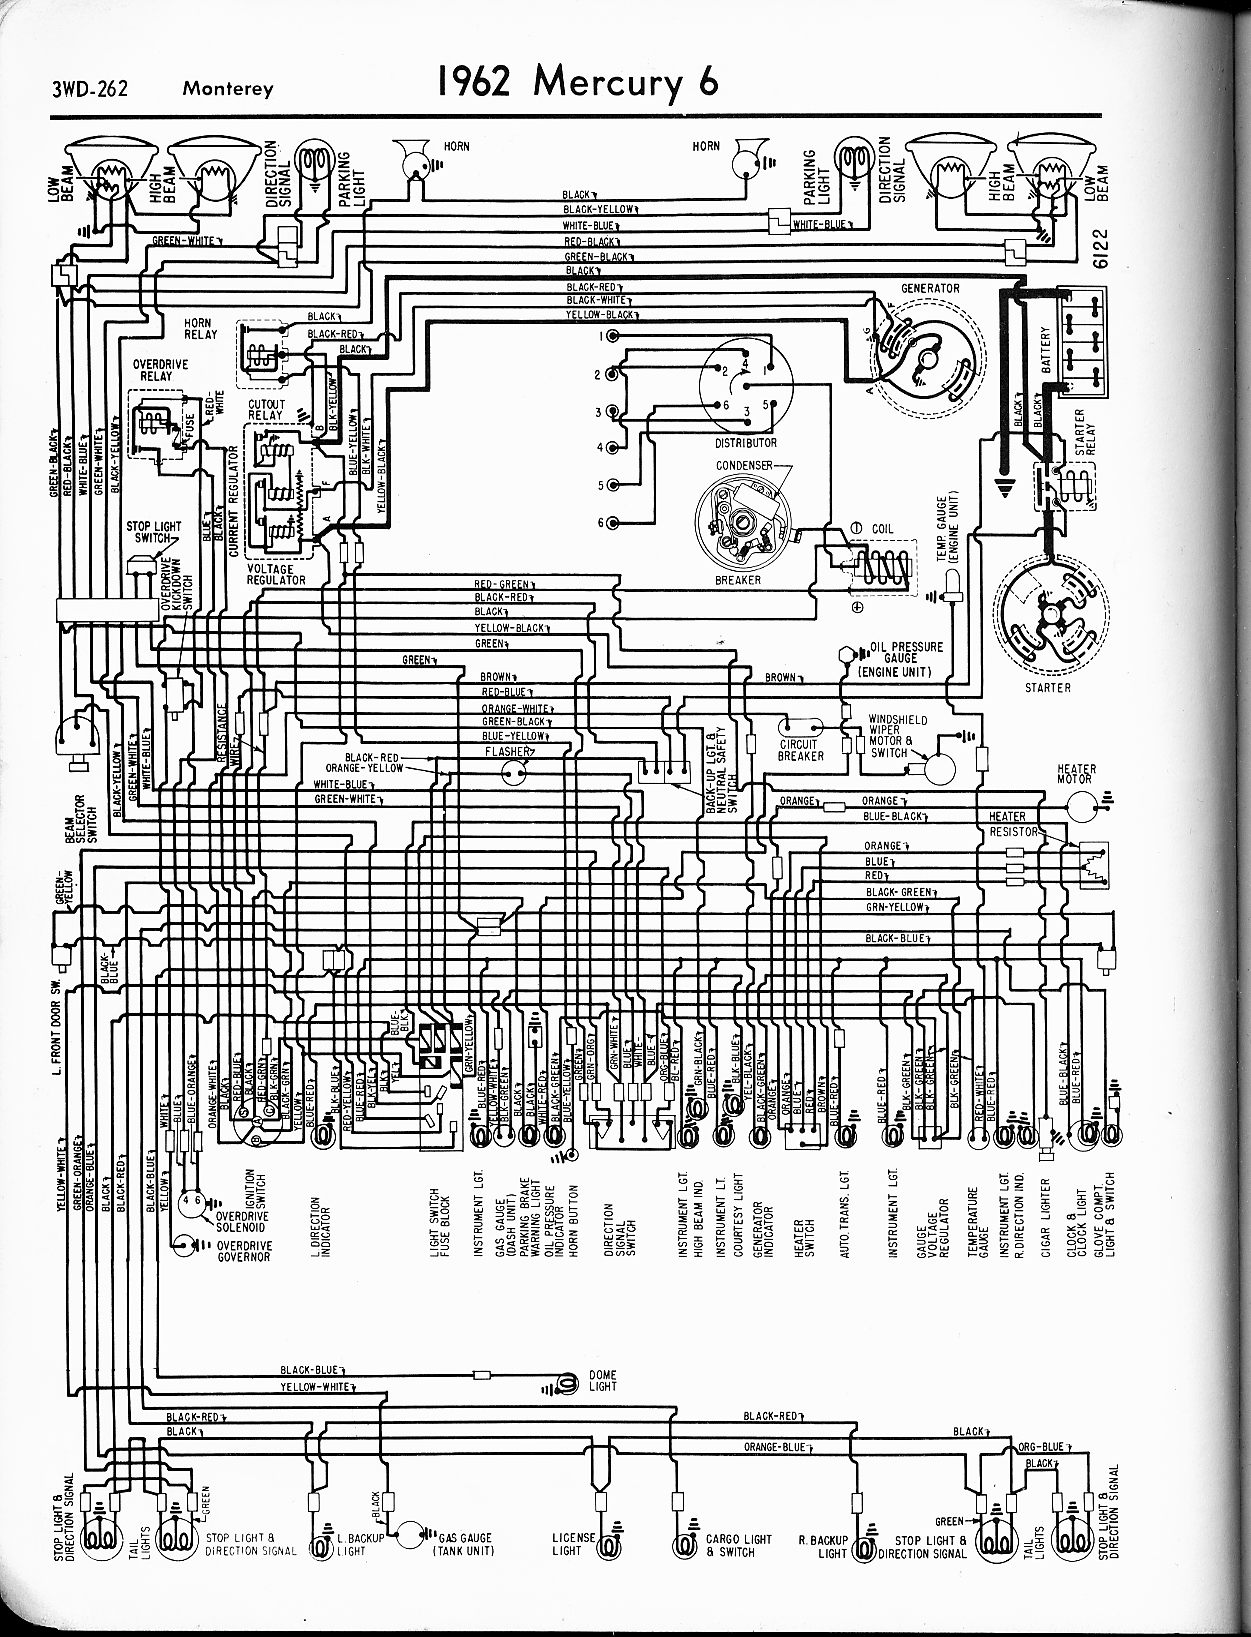 1972 ford thunderbird wiring diagram wiring diagram tutorial 1990 Thunderbird 1970 thunderbird wiring diagram wiring diagram schematics